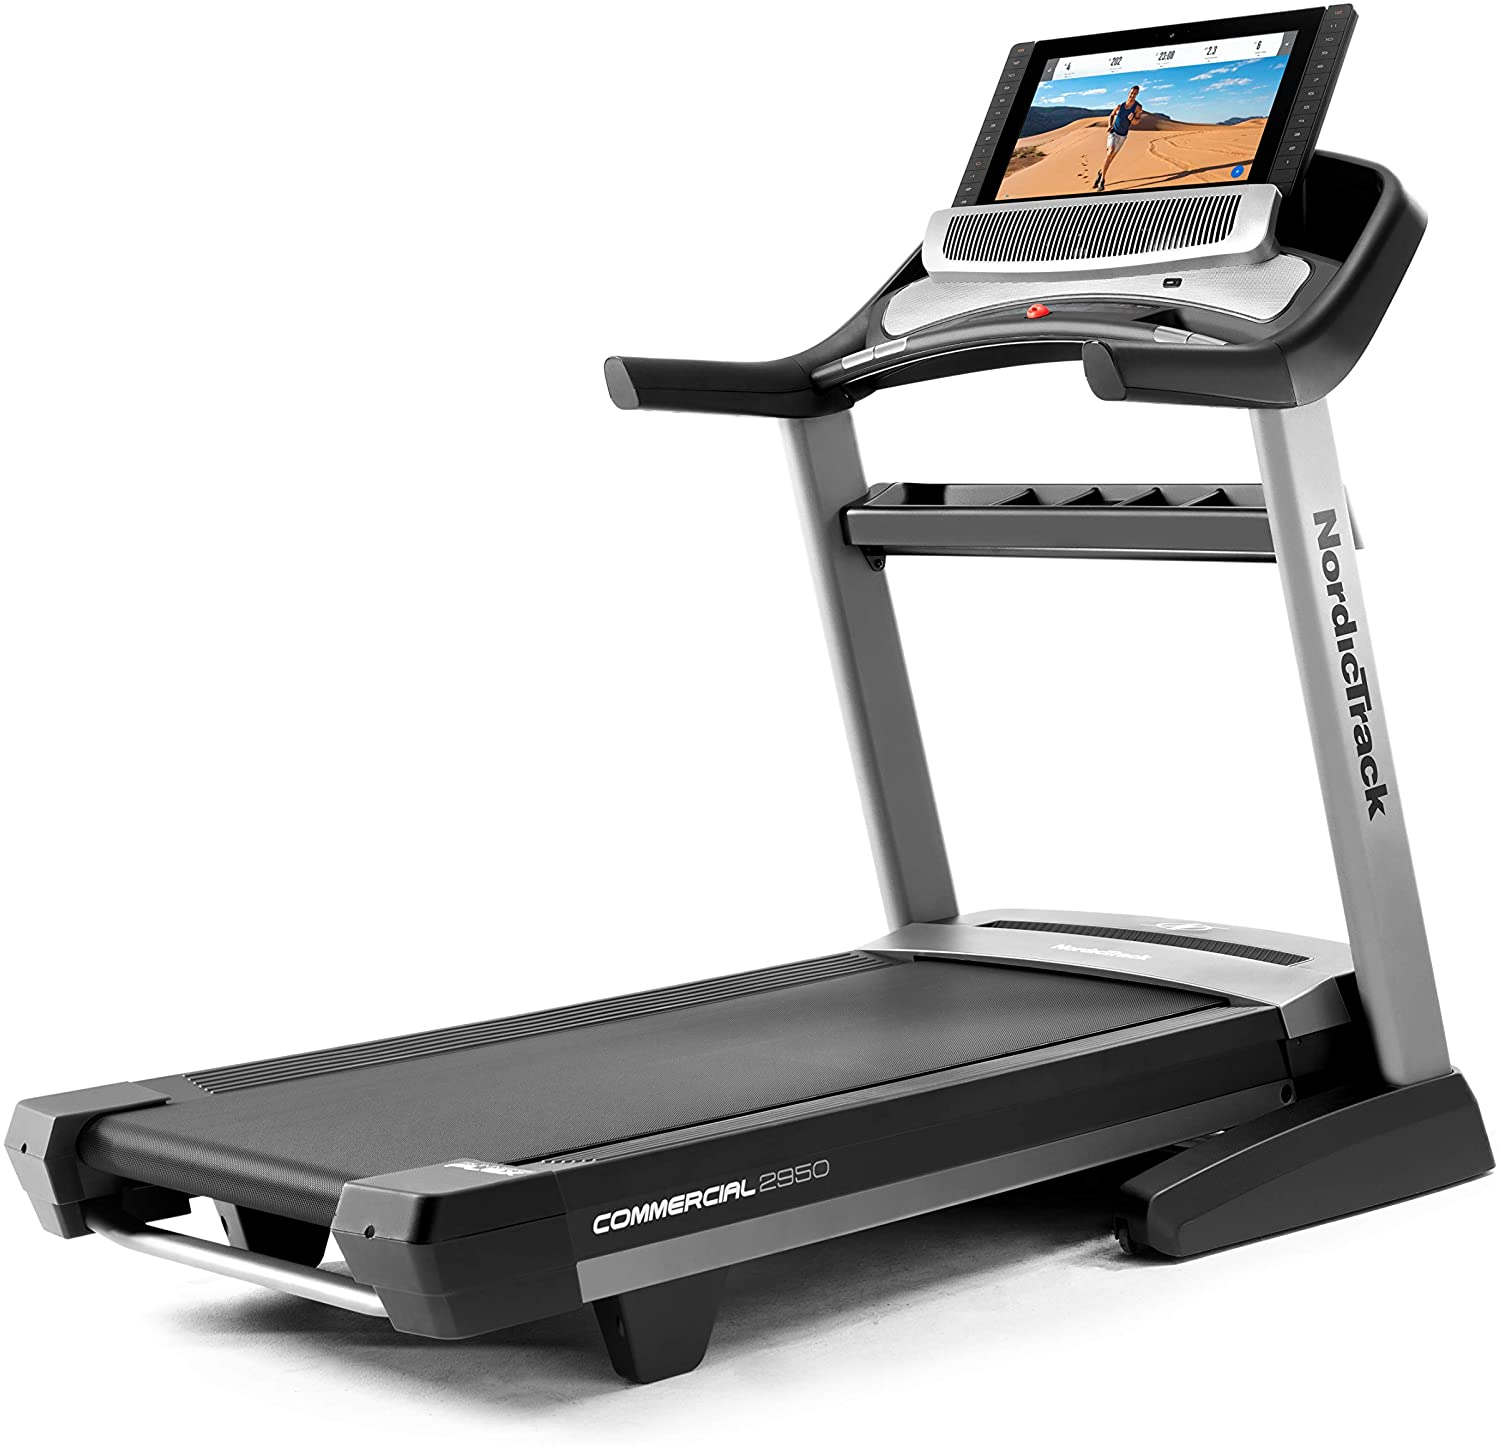 Best incline treadmill: Nordic Track Commercial Series Treadmills